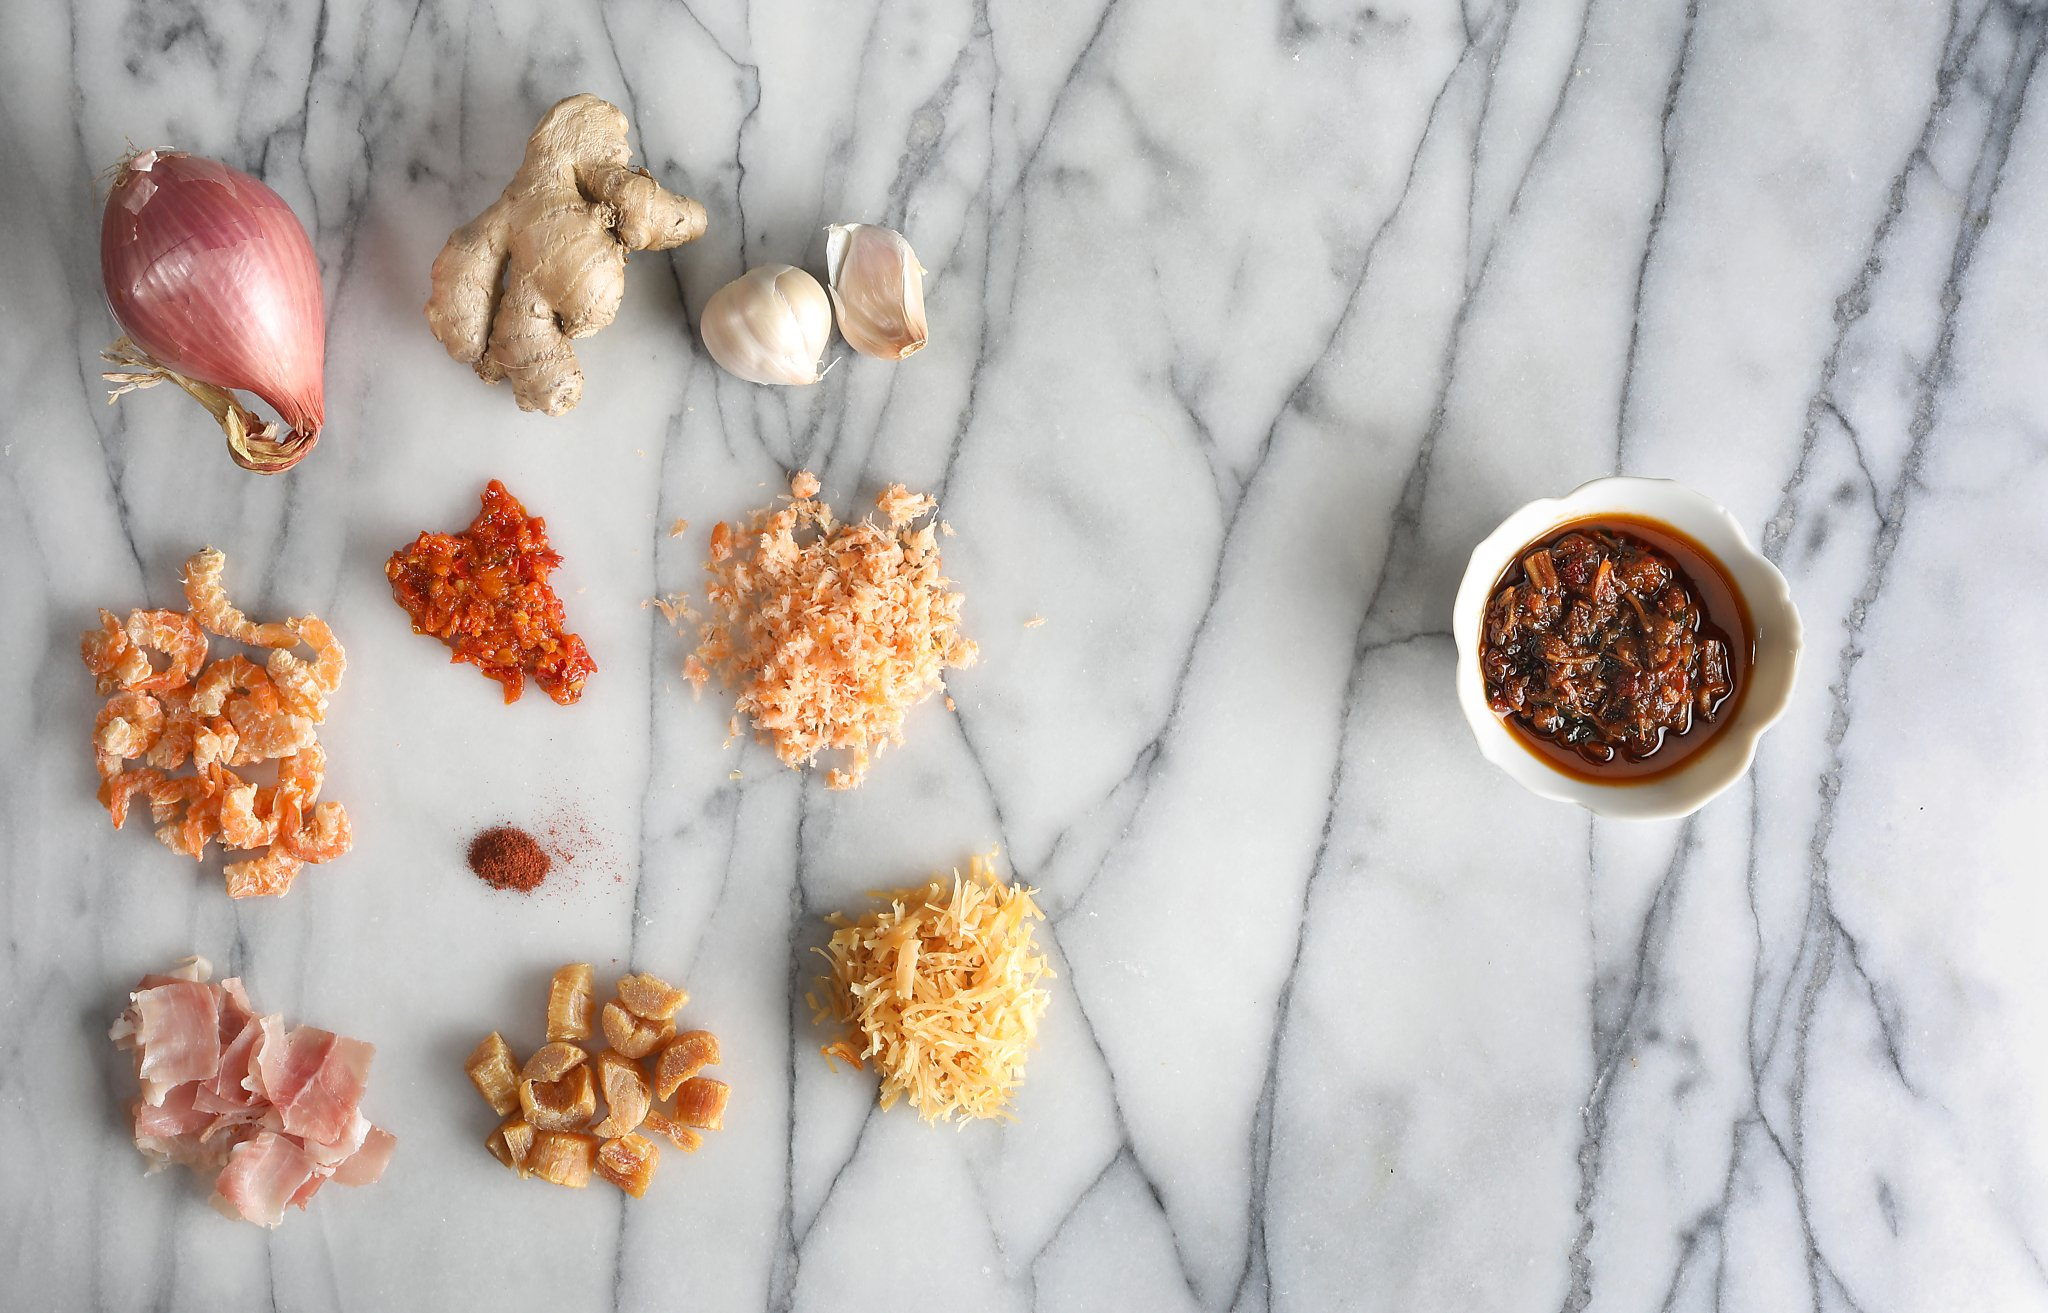 How to make XO, the umami-rich sauce Bay Area chefs love